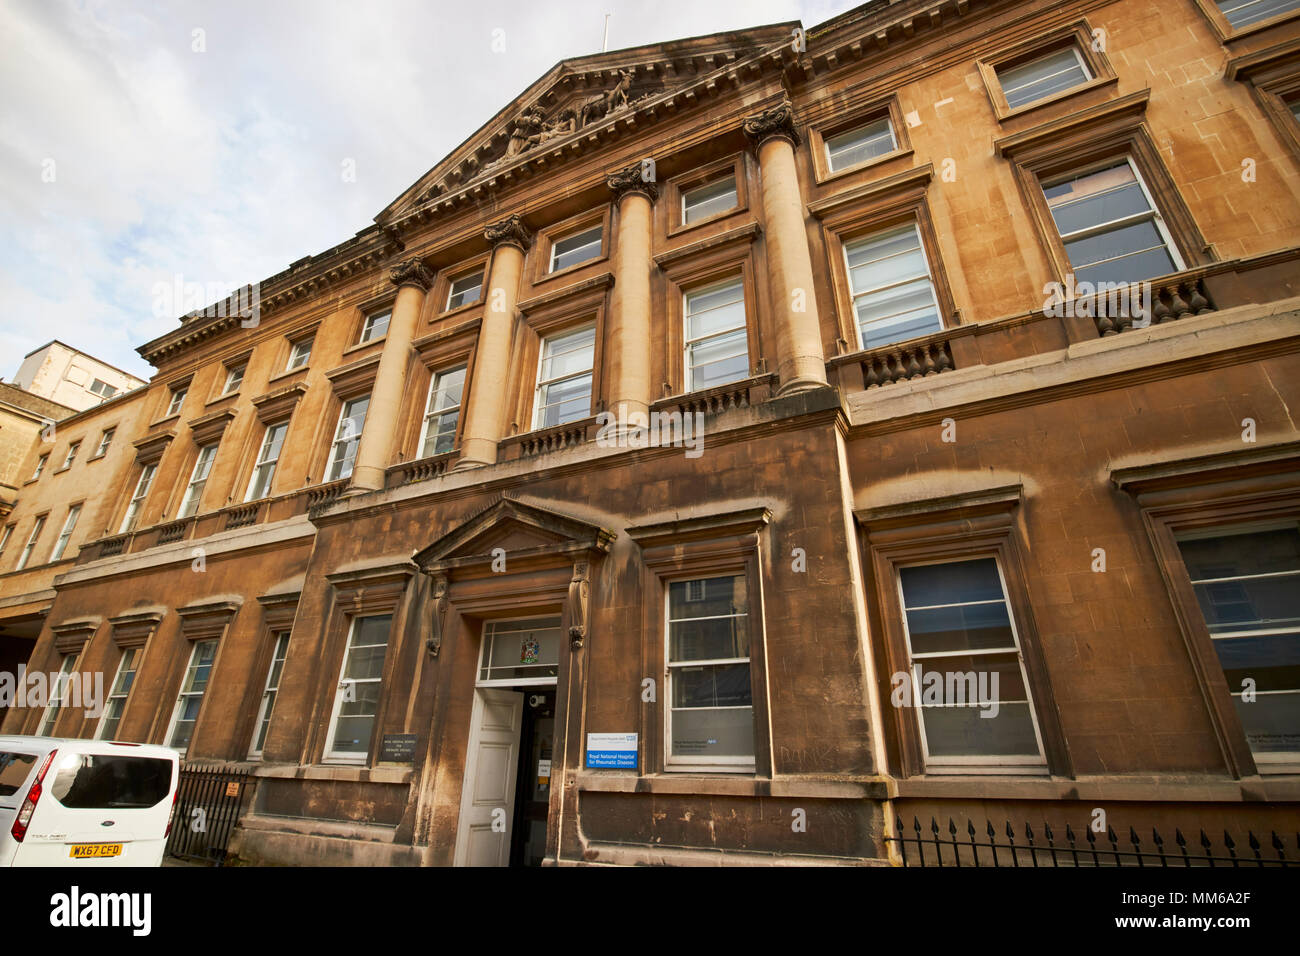 Royal National Hospital for Rheumatic Diseases formerly known as the Royal Mineral Water Hospital Bath England UK - Stock Image